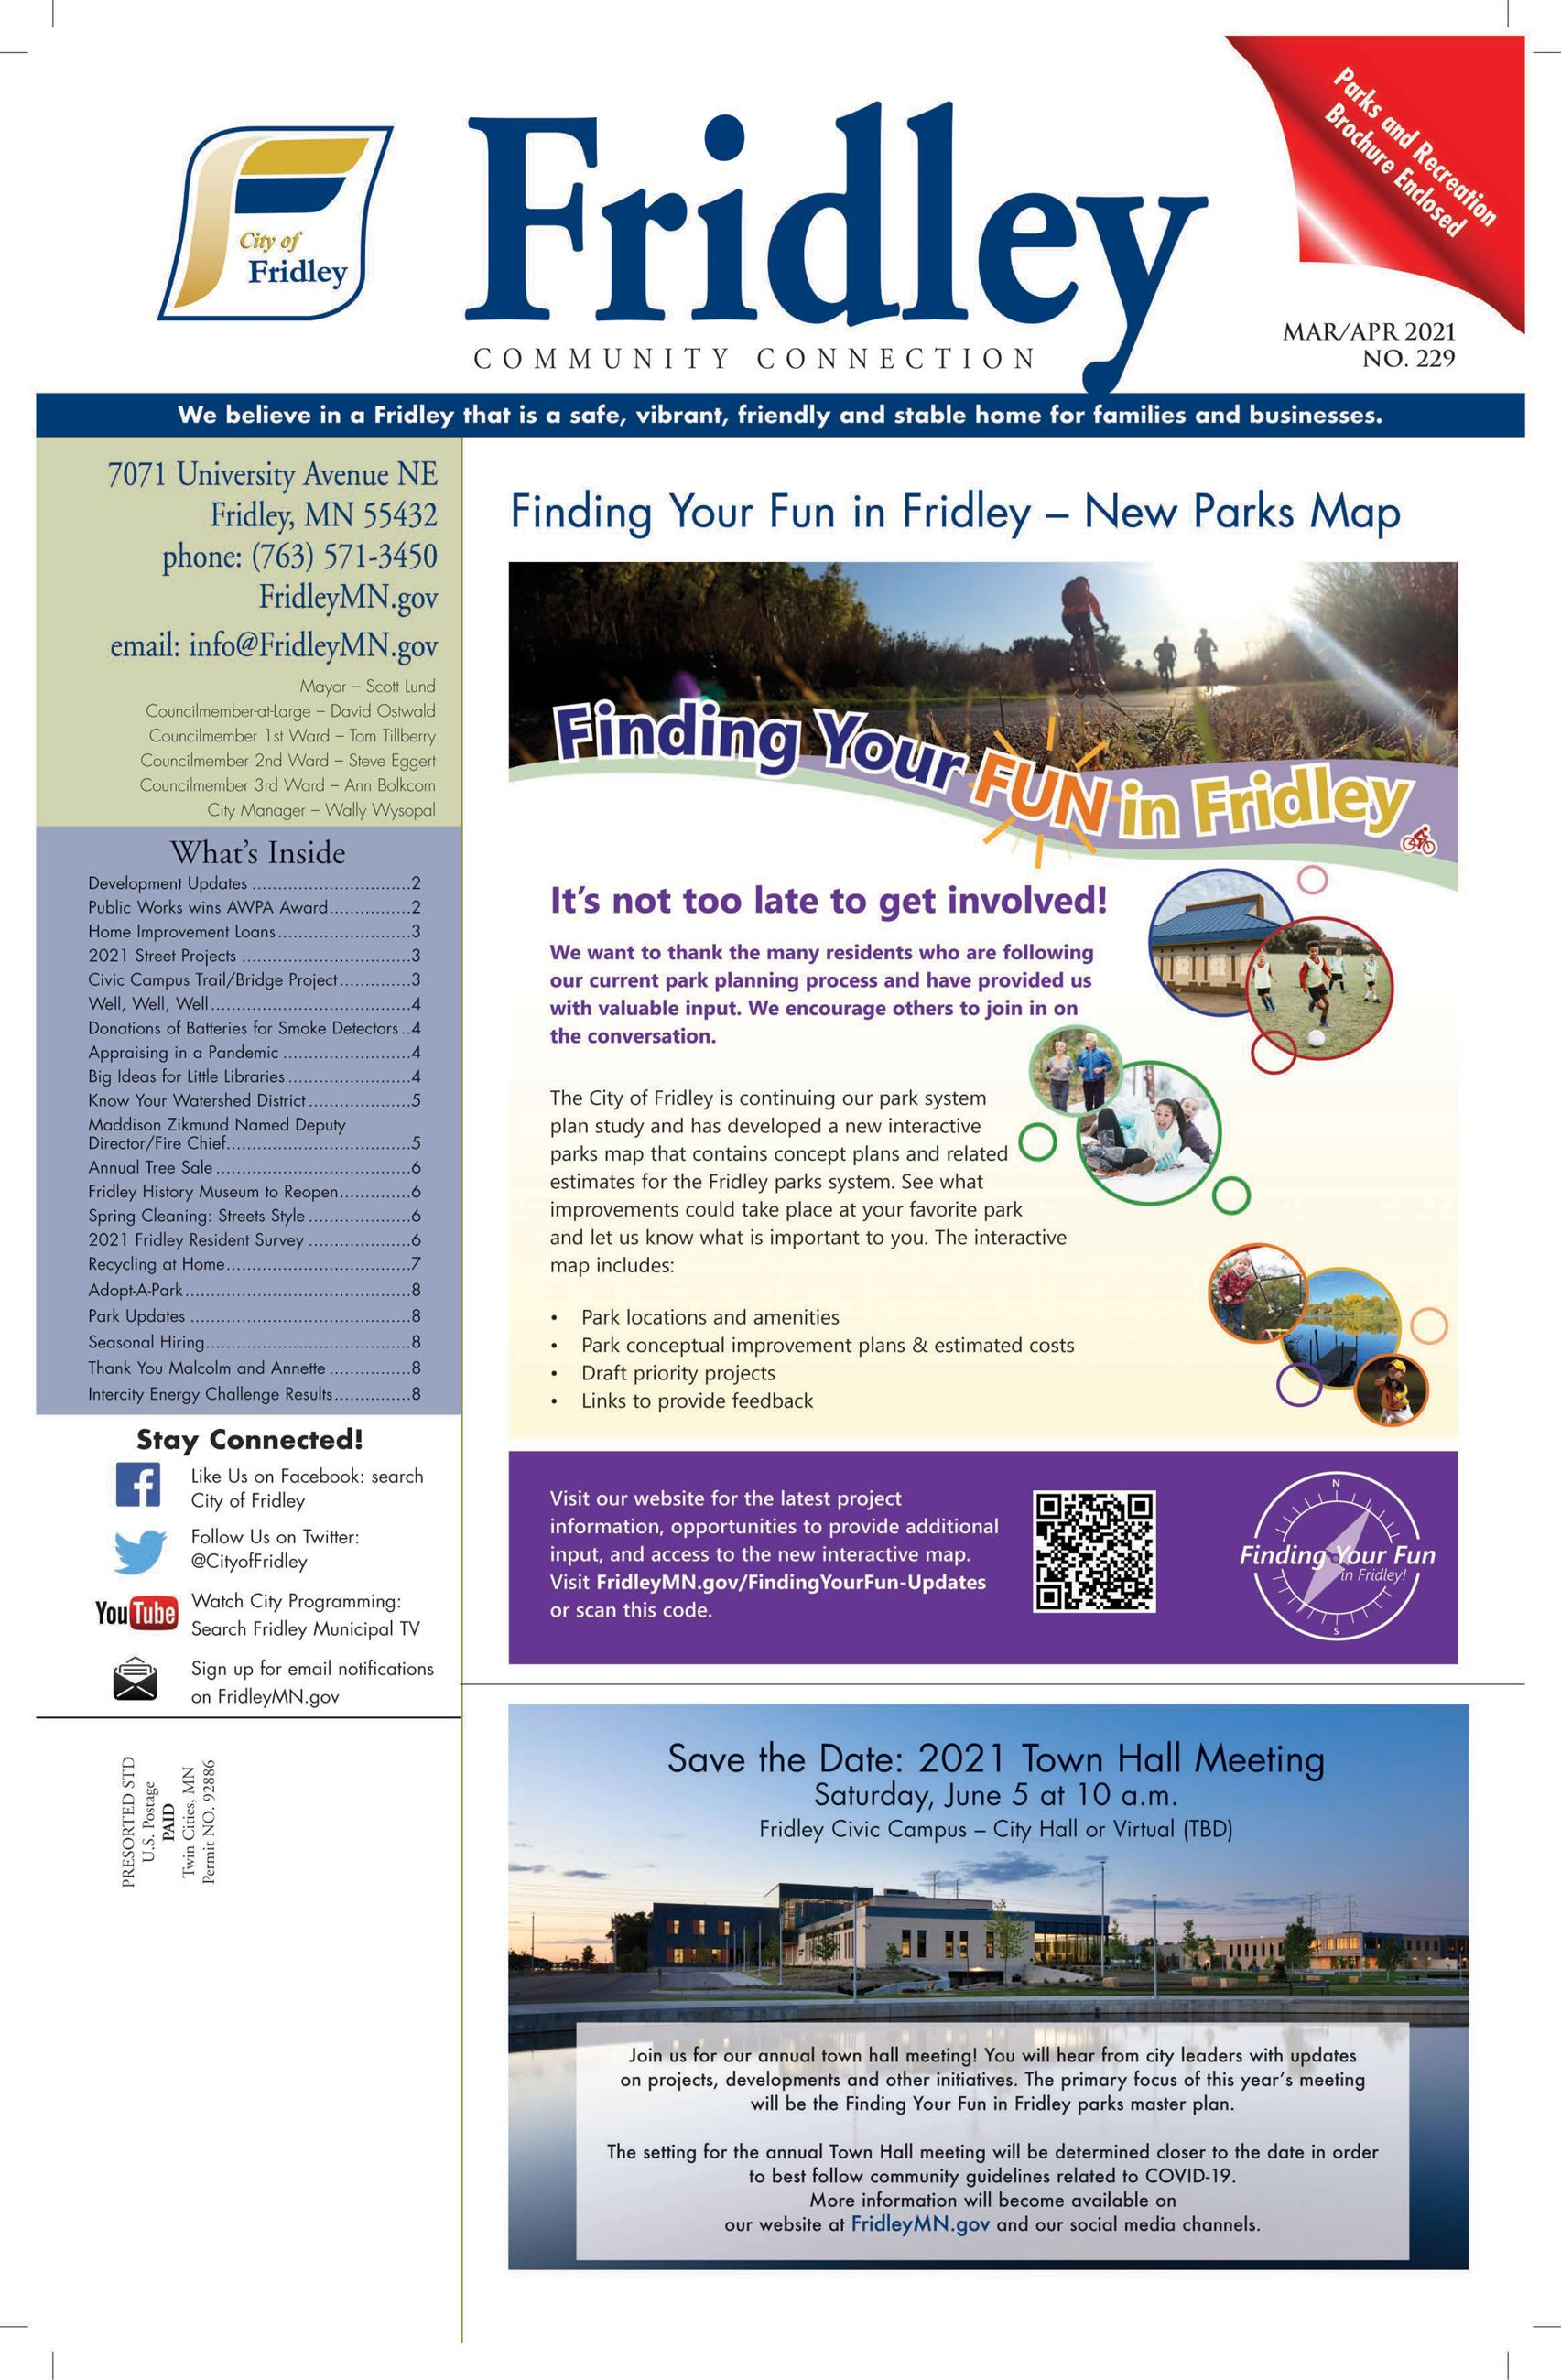 Front page of March April newsletter